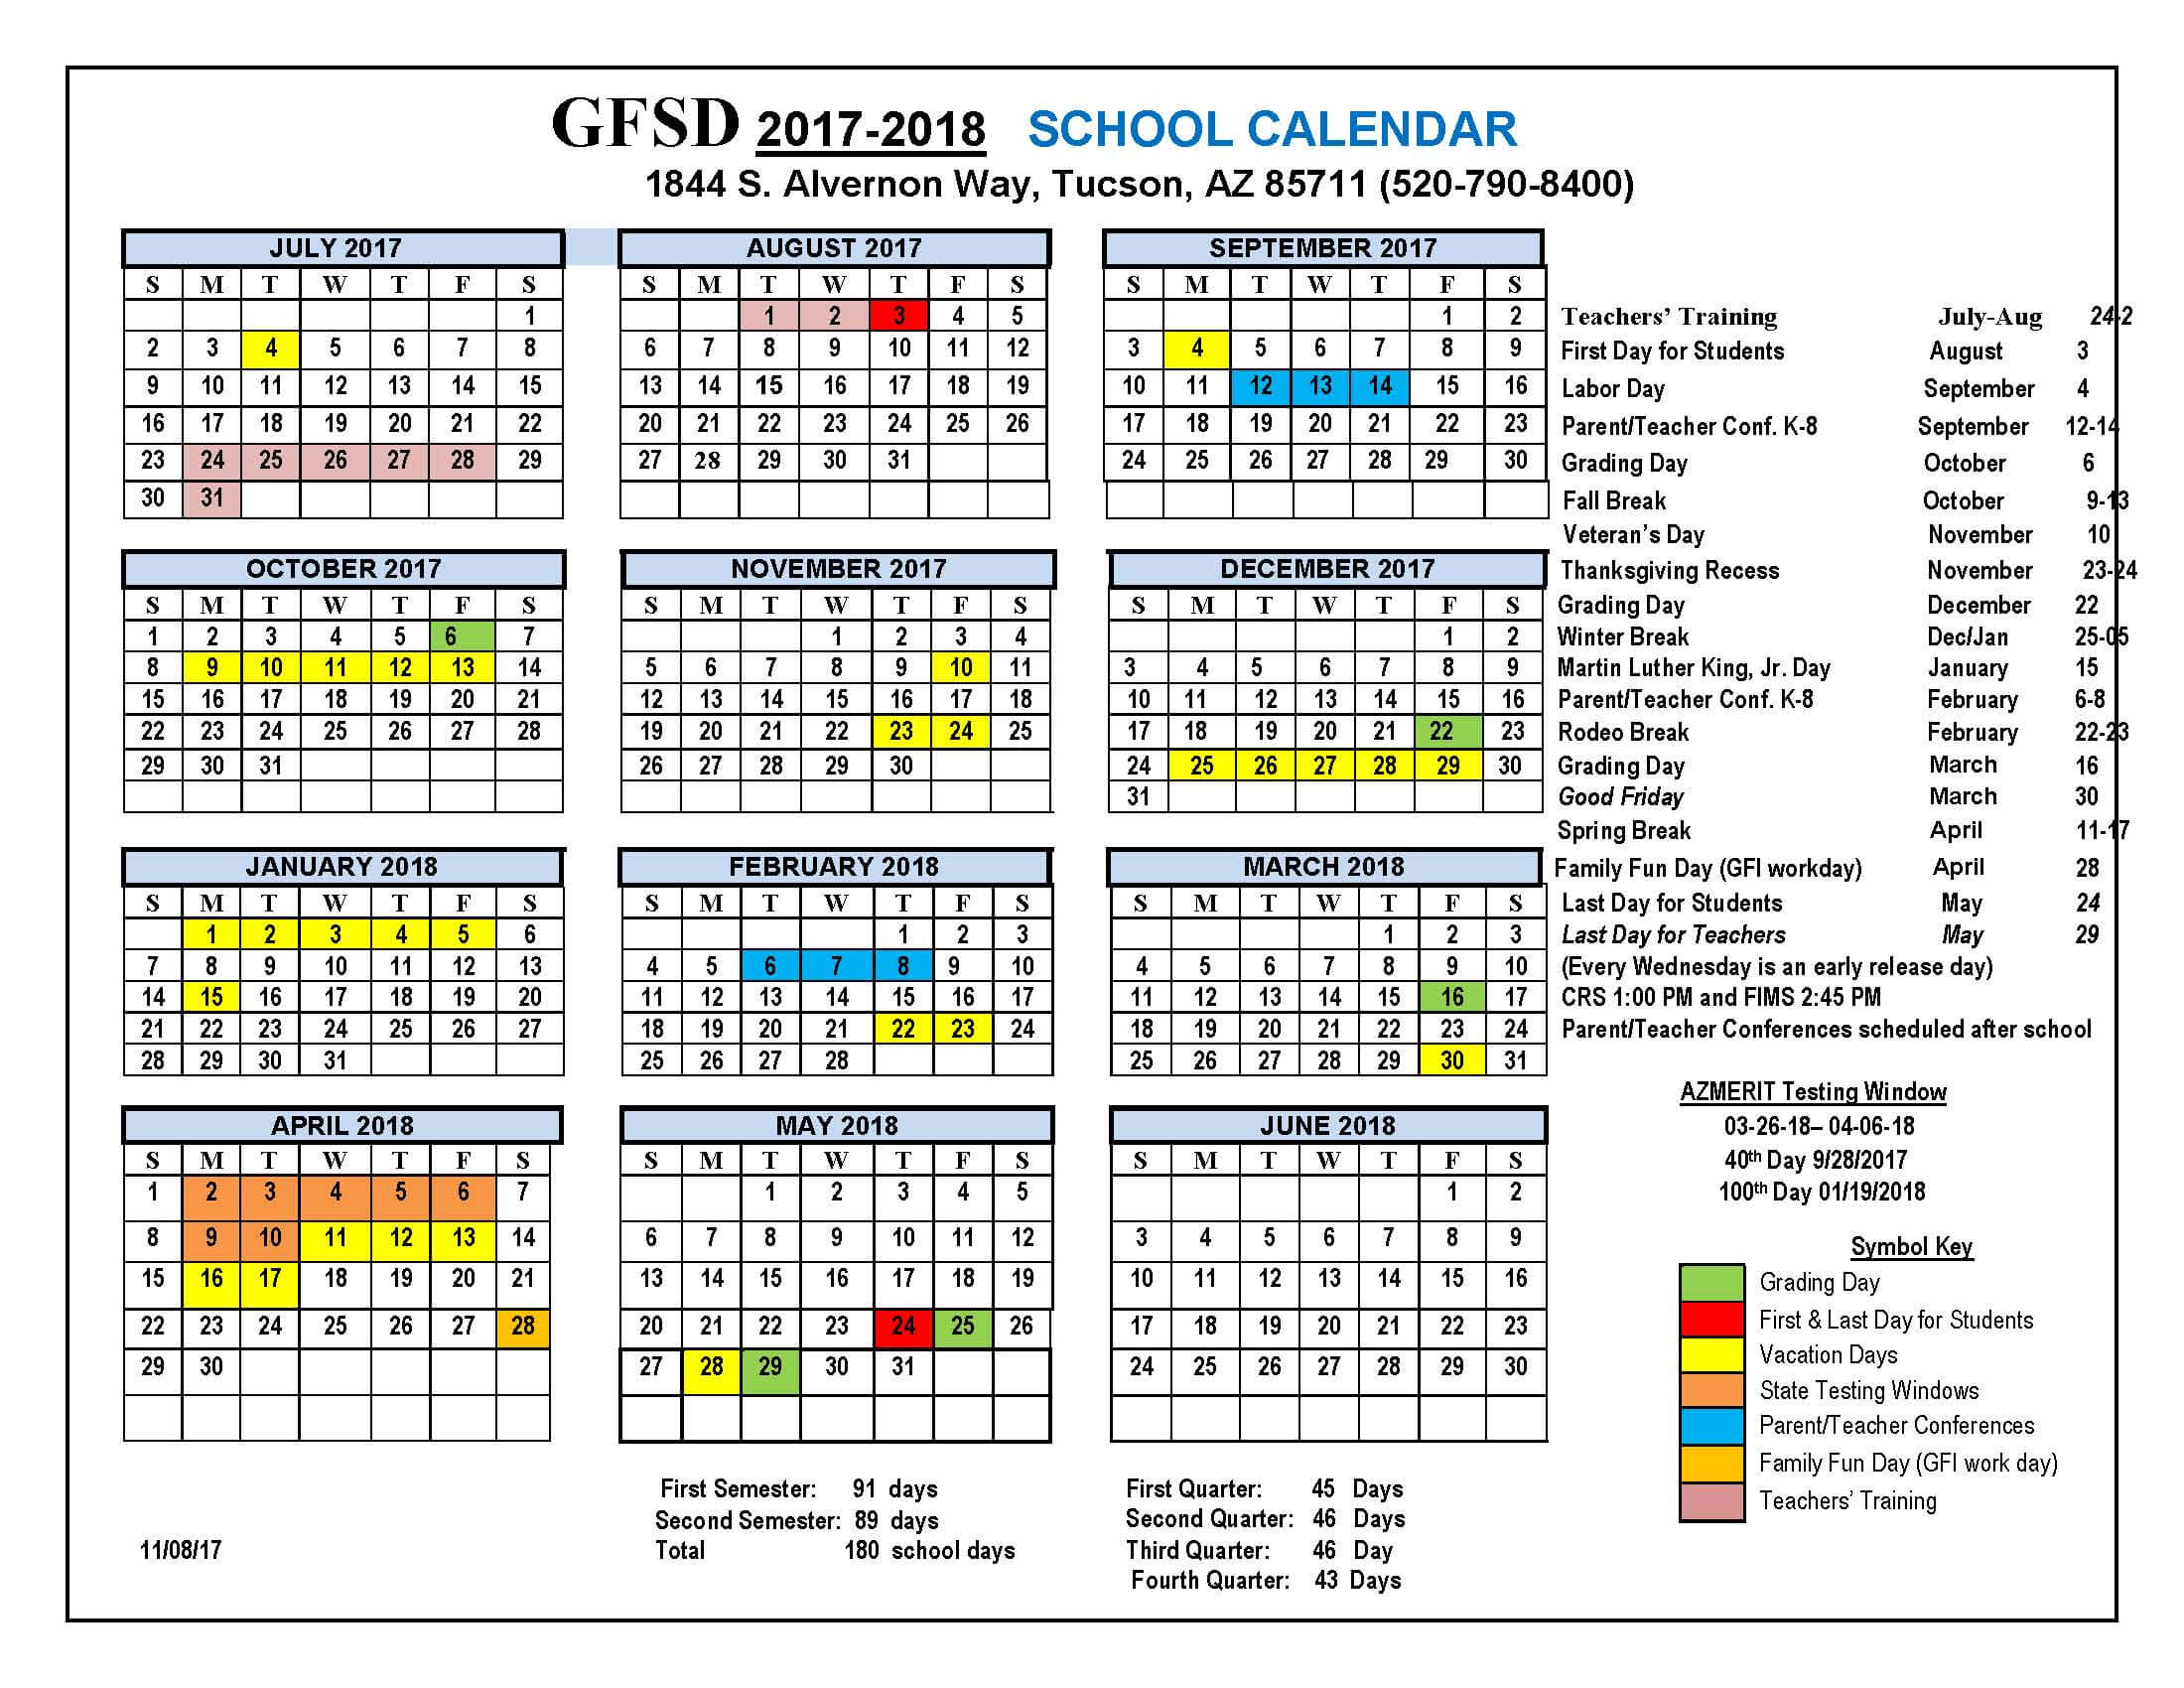 Griffin Foundation School Calendar 2017-2018